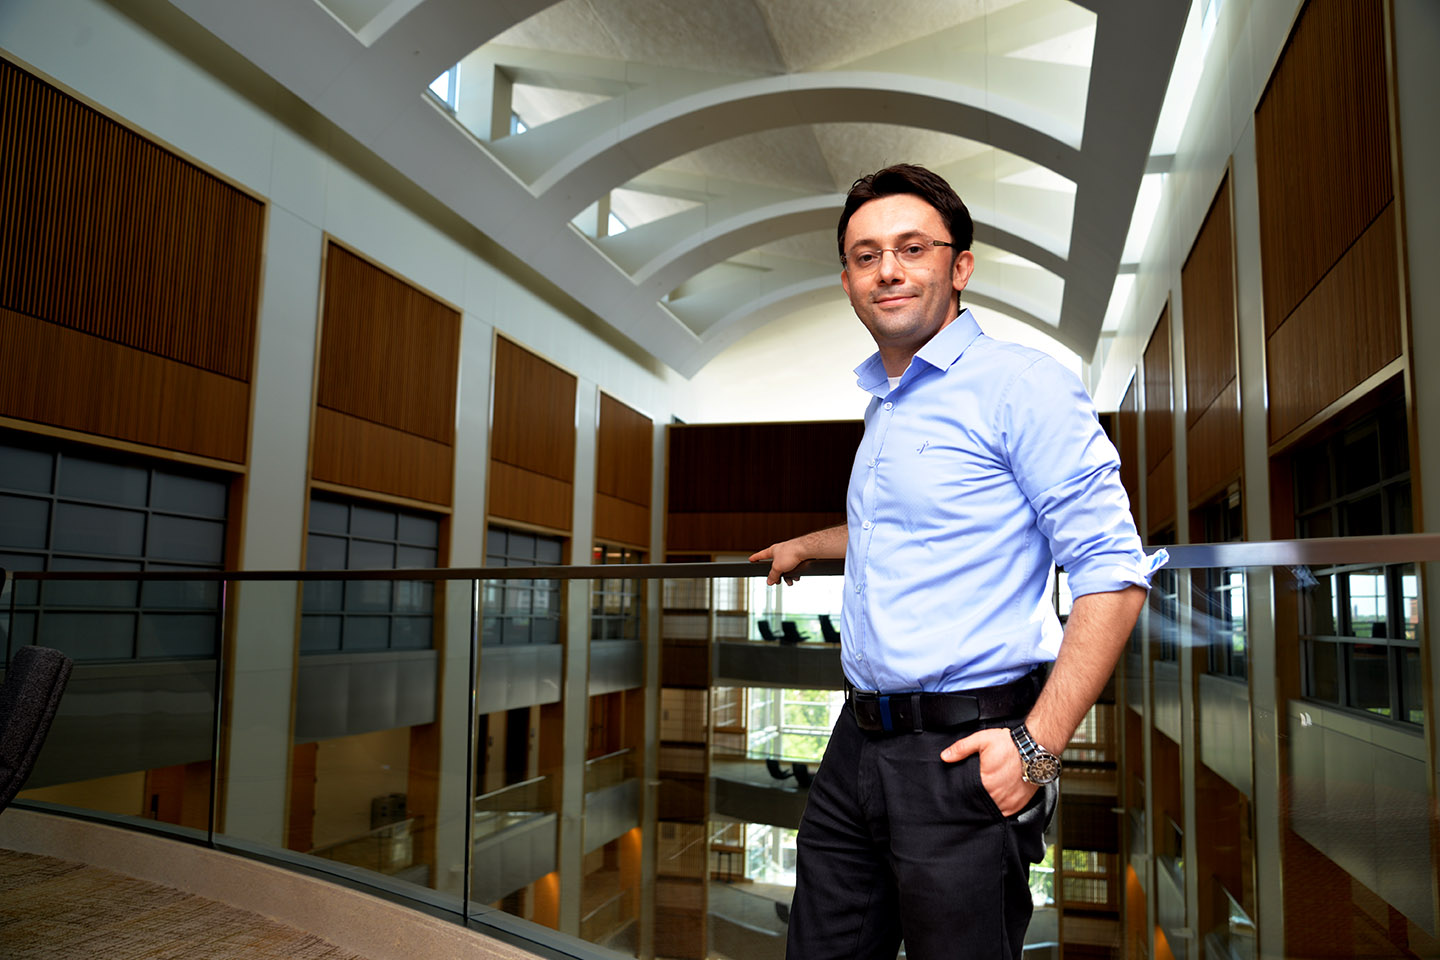 Sönmez Drives Sustainability to Help Feed Families